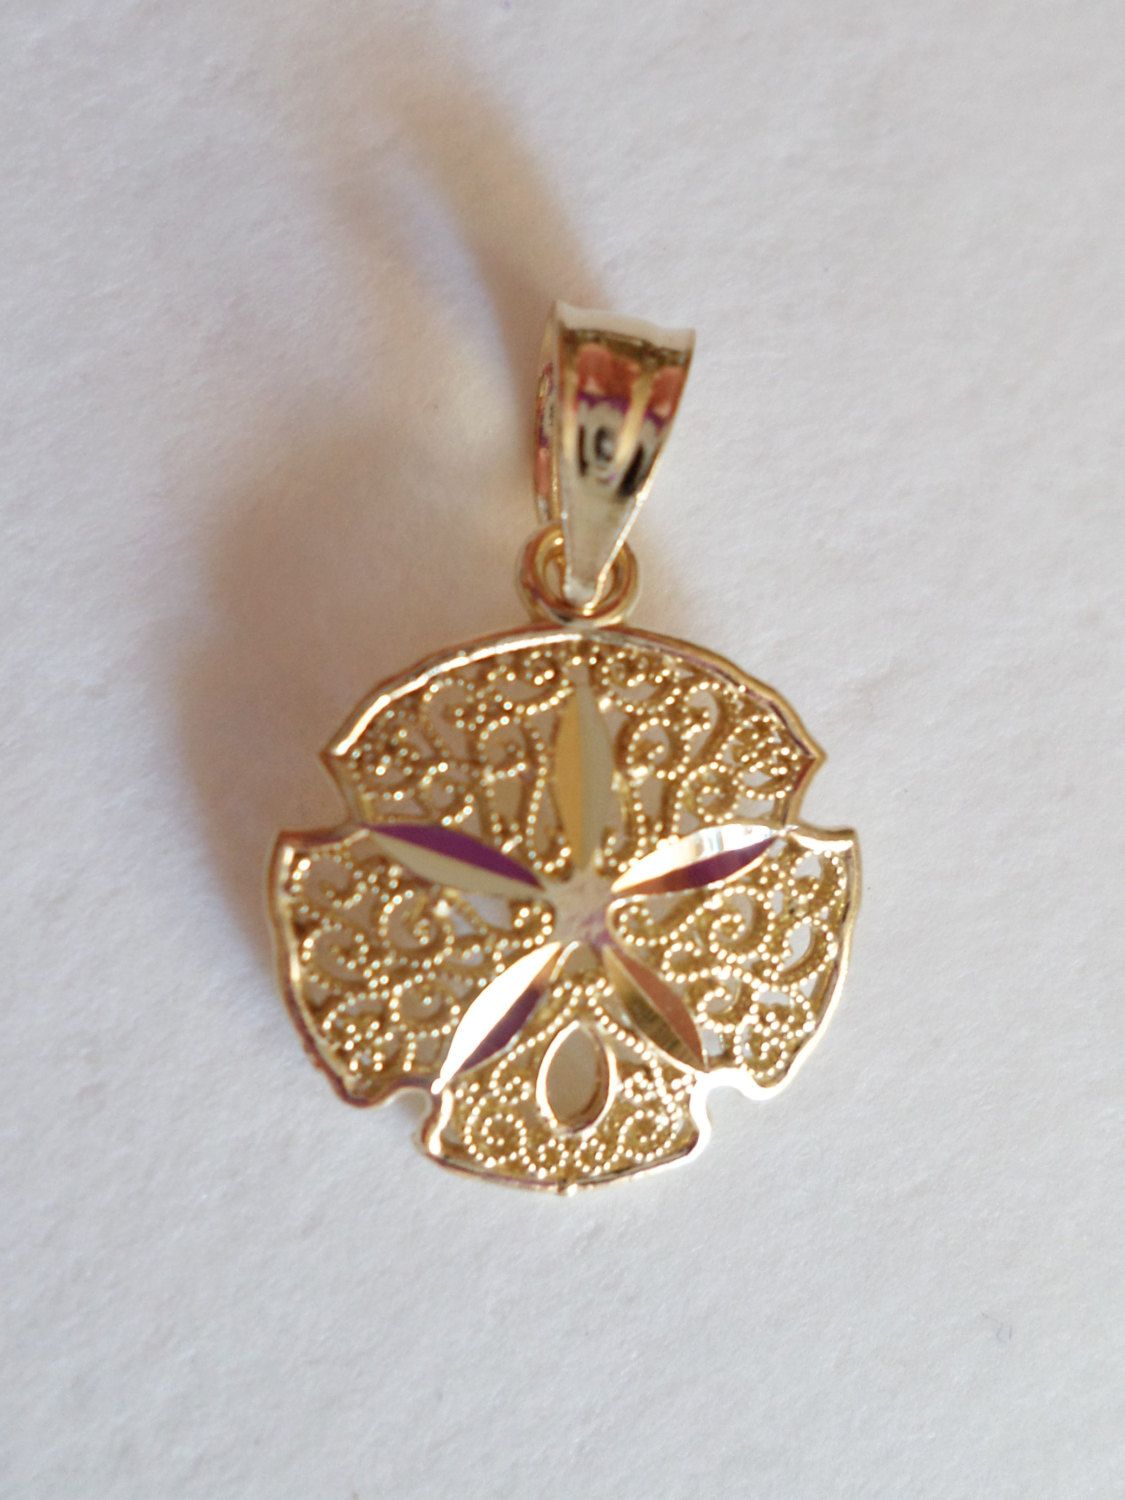 14K Yellow Gold Stamped And NJ Hallmarked Small Filigree Open Work Pendant By Bestintreasures On Etsy